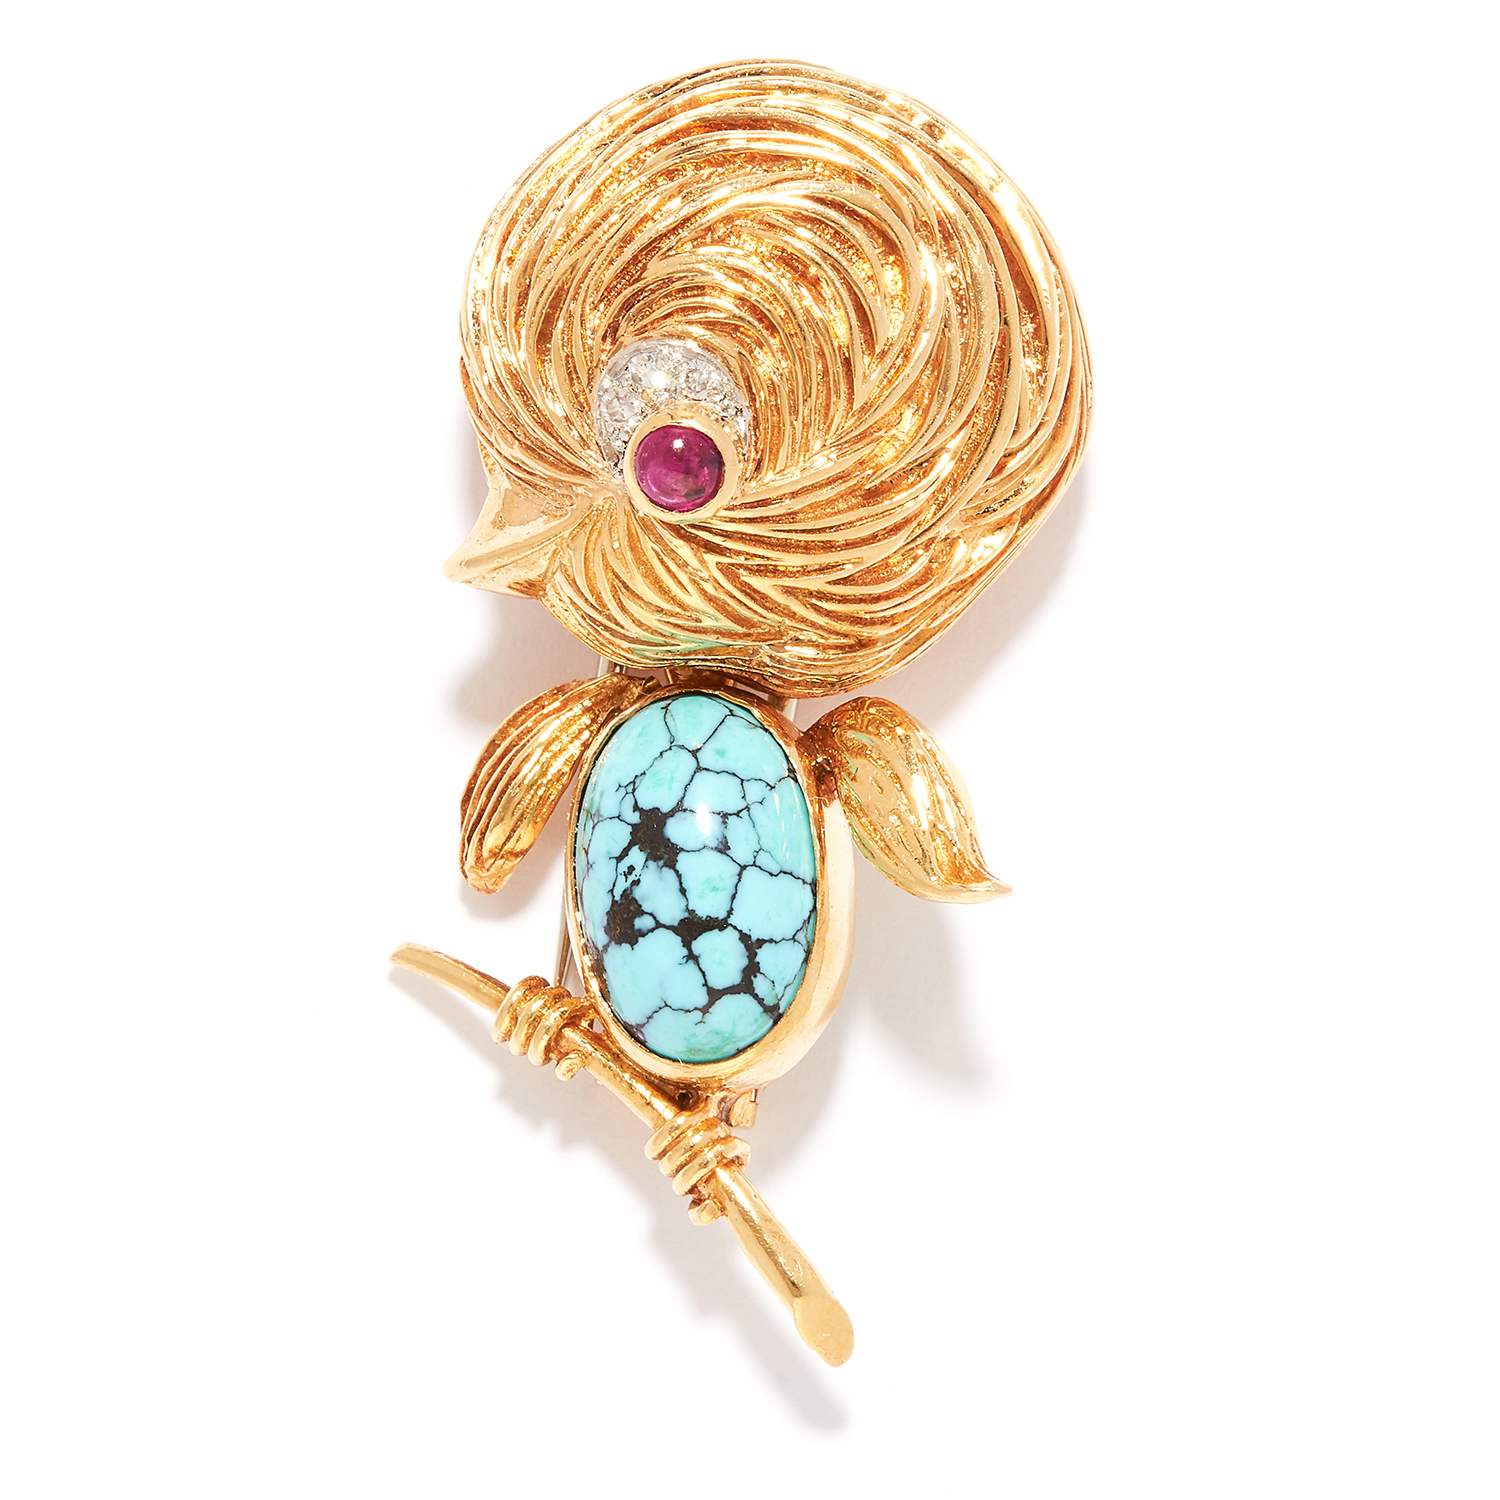 VINTAGE TURQUOISE, RUBY AND DIAMOND BIRD BROOCH, VAN CLEEF & ARPELS in 18ct yellow gold, set with